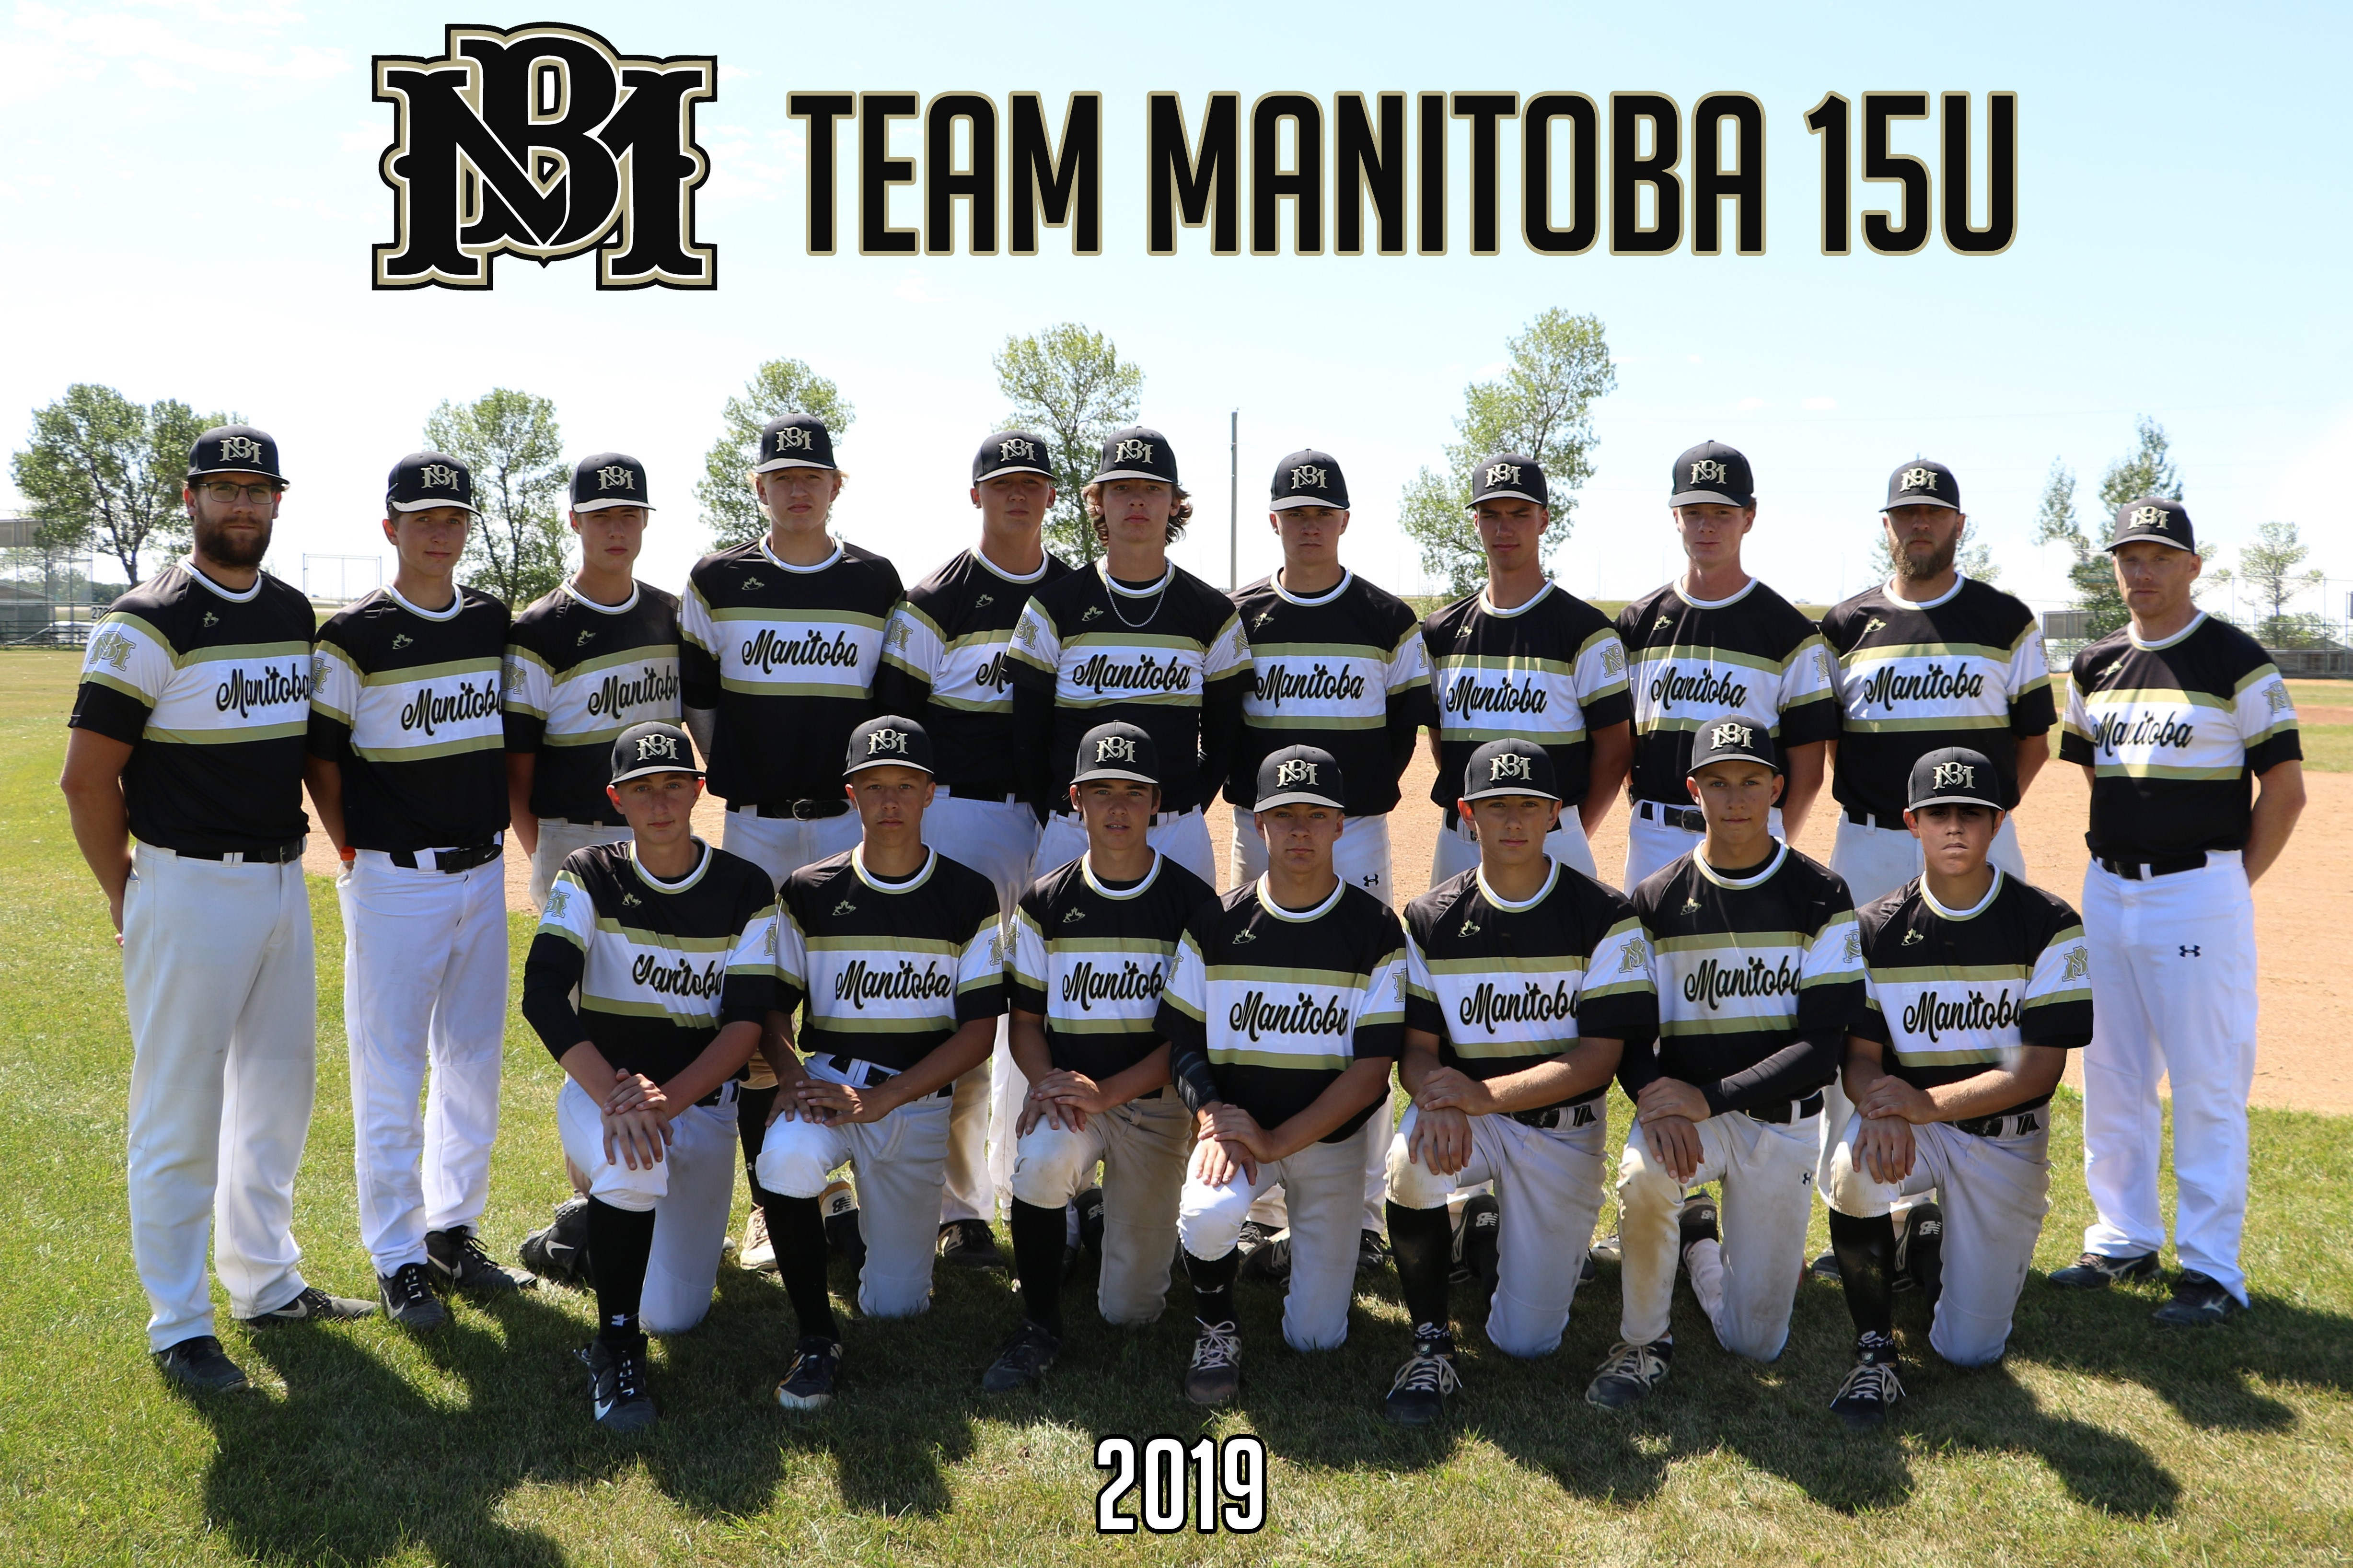 15U Team Manitoba Photo.jpg